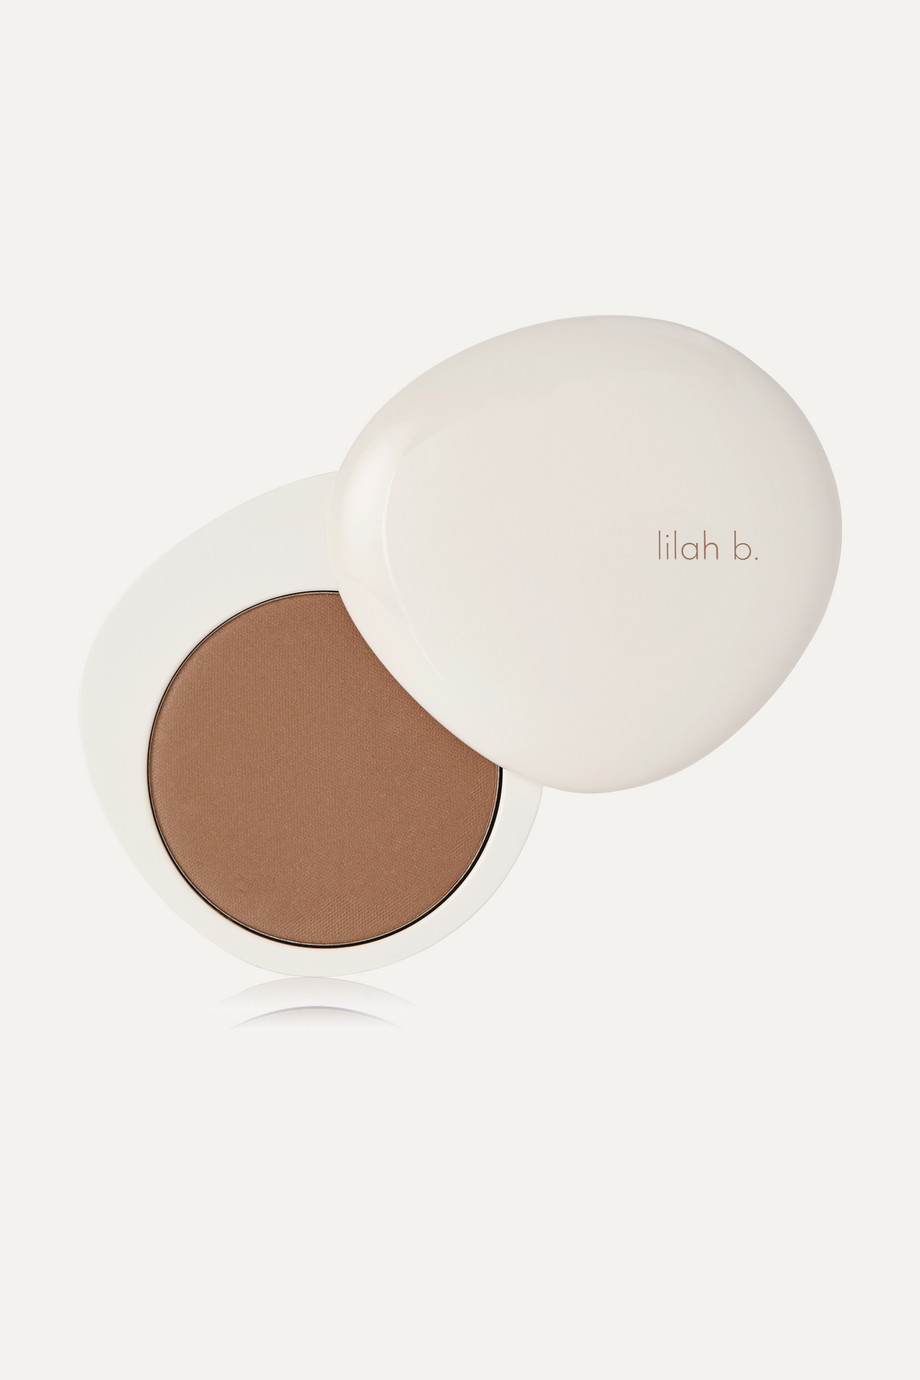 Lilah B. Fond de teint Flawless Finish, b.pure